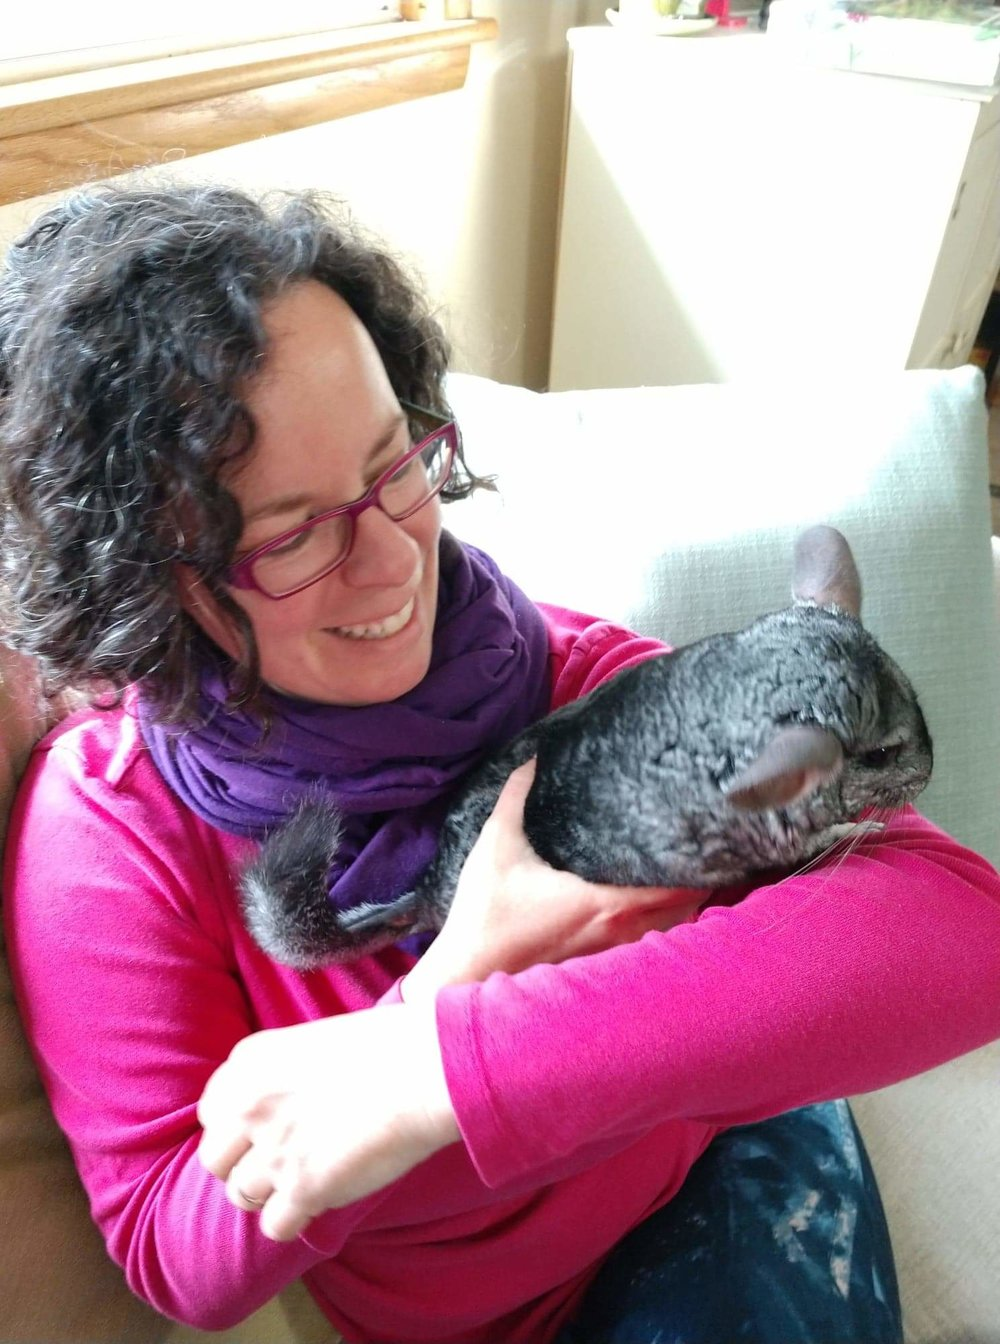 Resident Chinchilla extraordinaire Balo and Lindsey